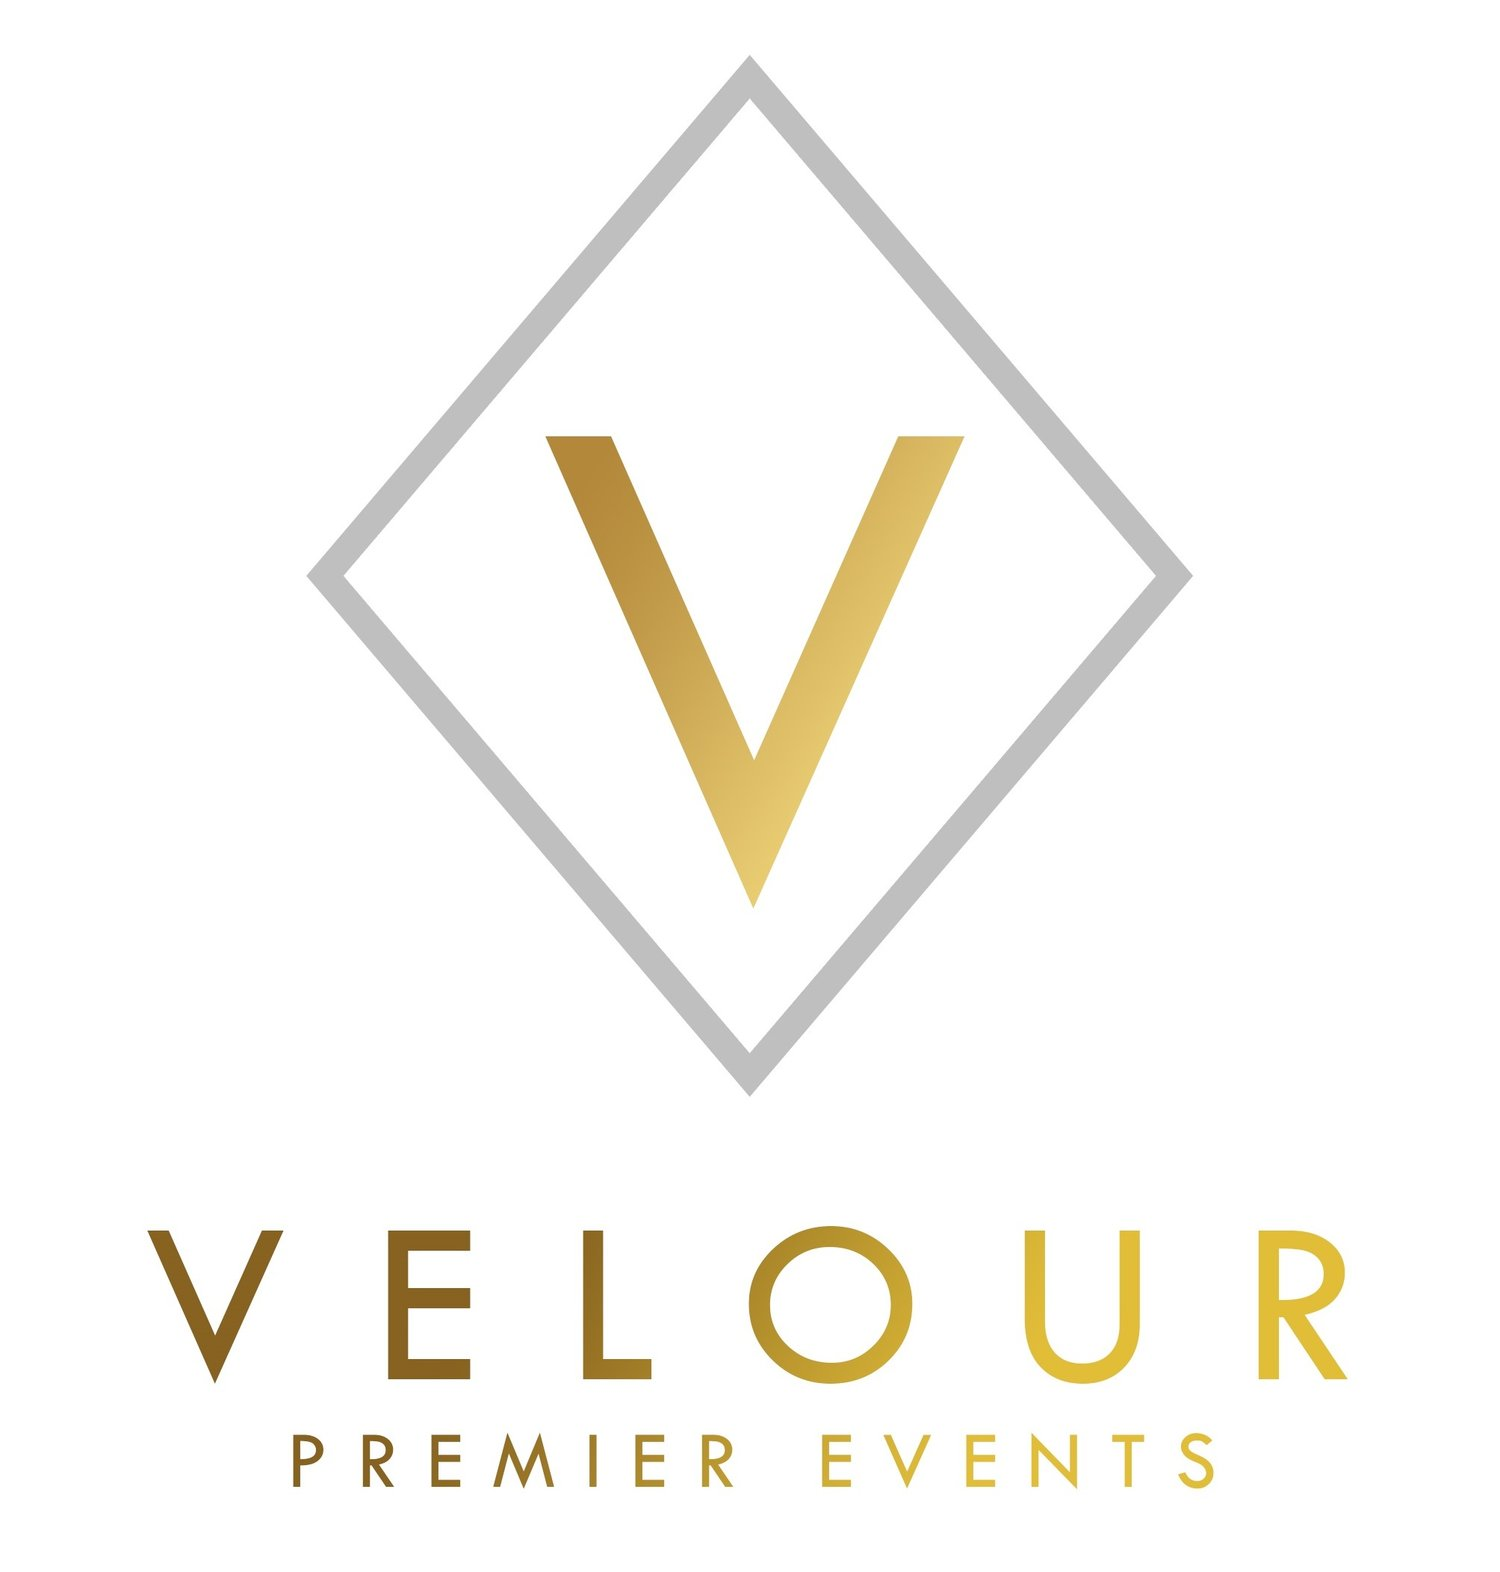 Velour Premier Events